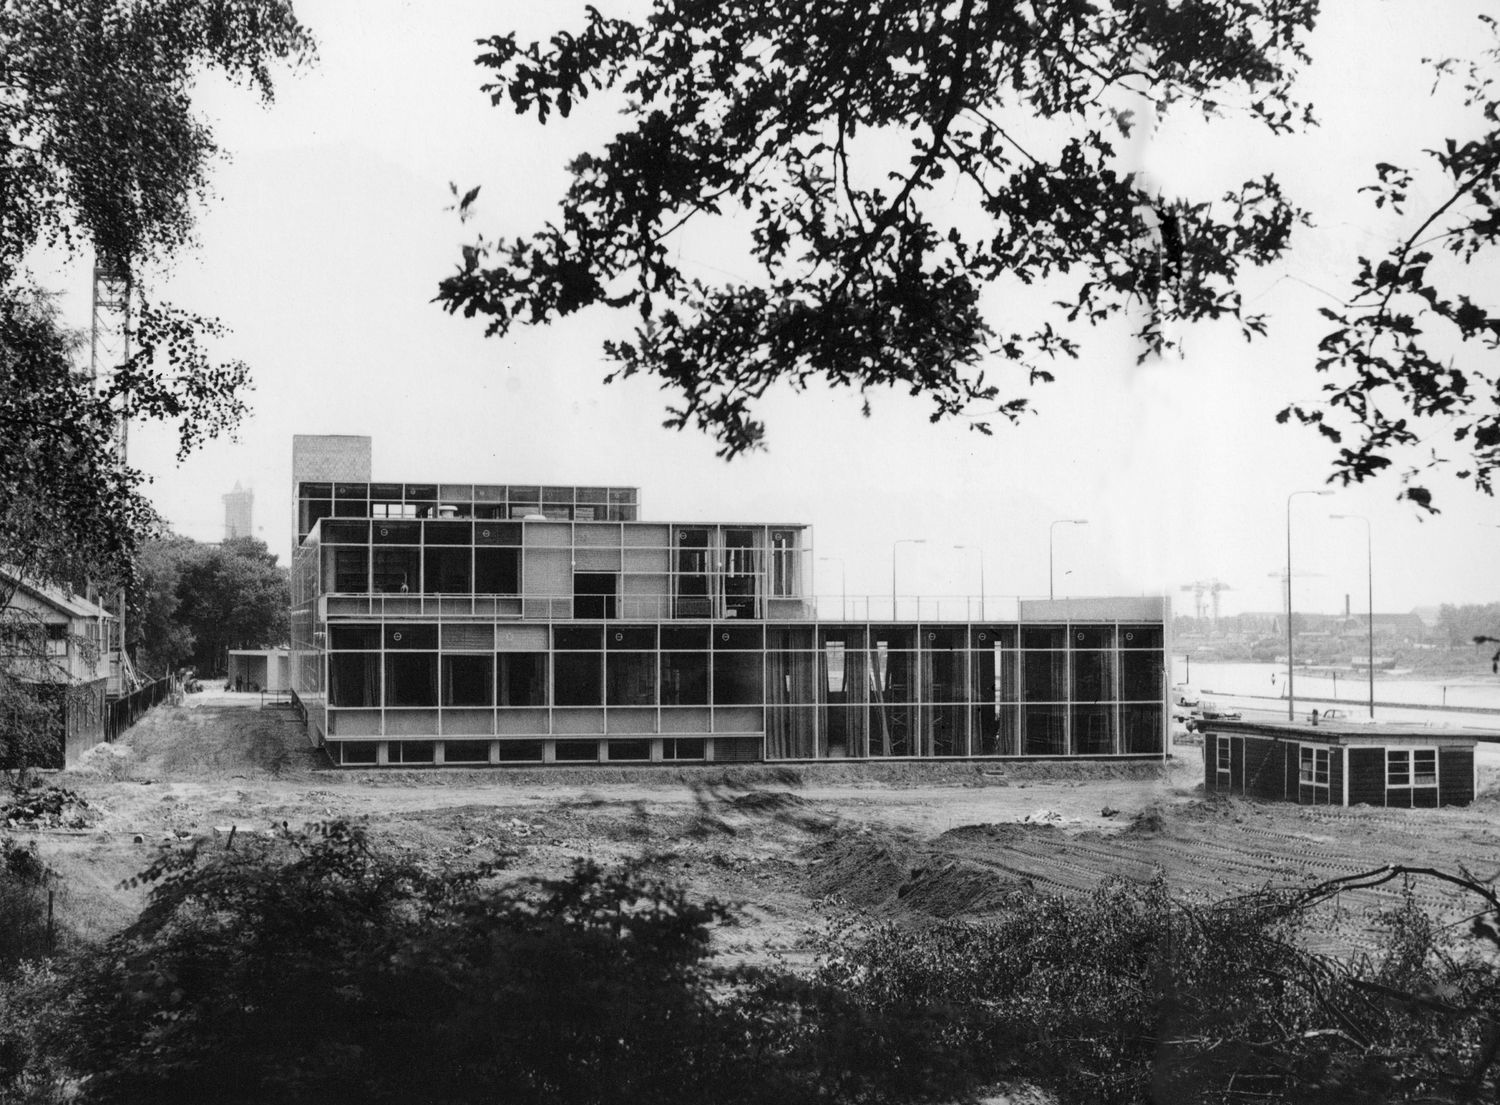 From the archives Rietveld building under construction.